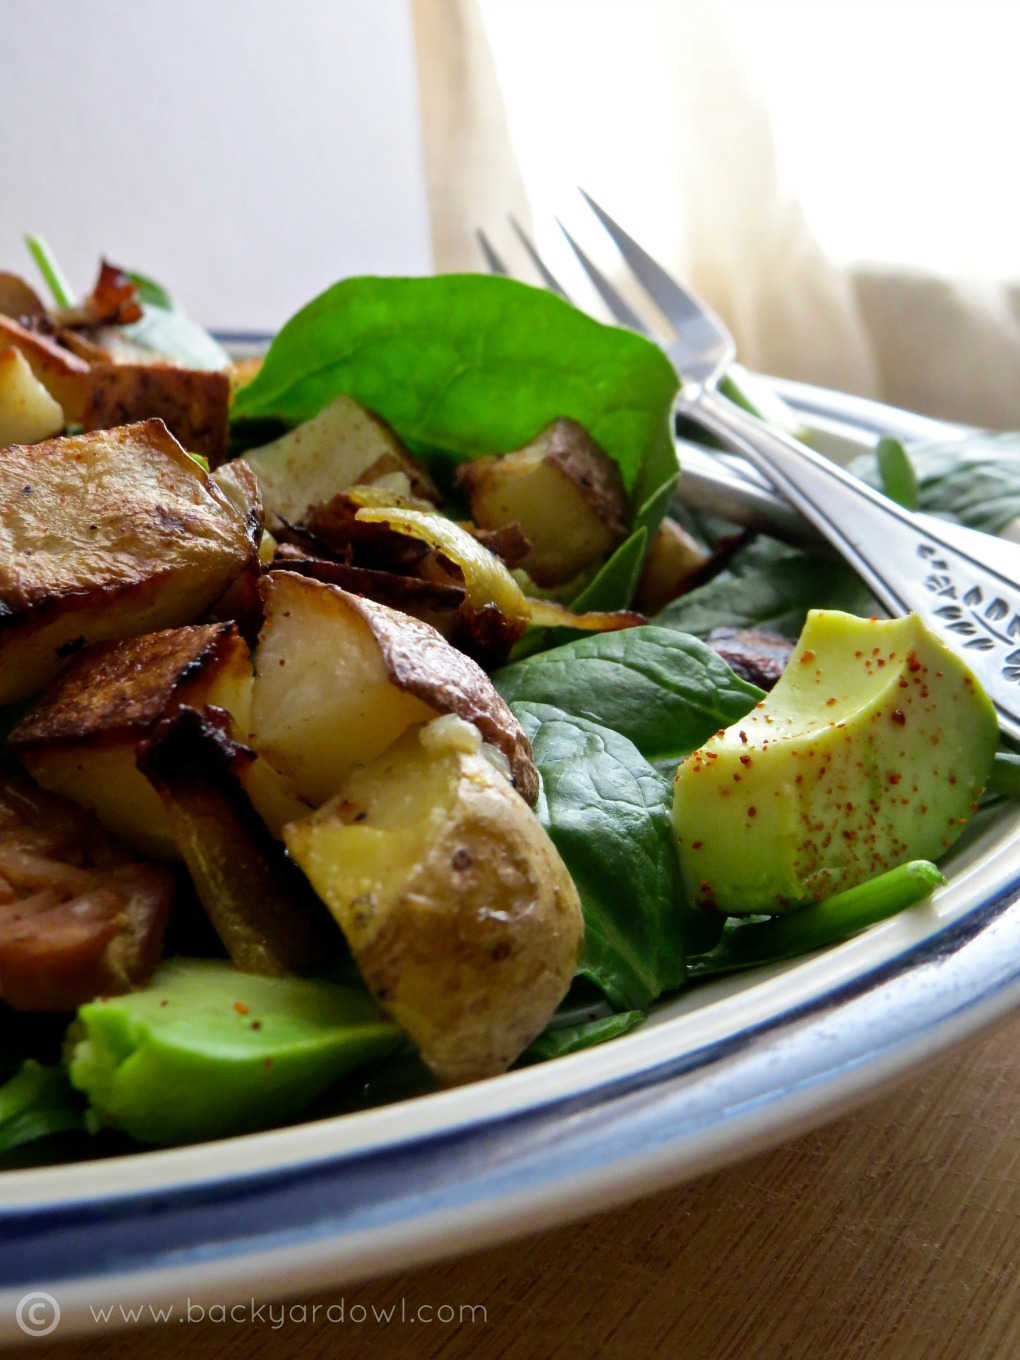 spinach salad with tempeh, avocado, and roast potatoes